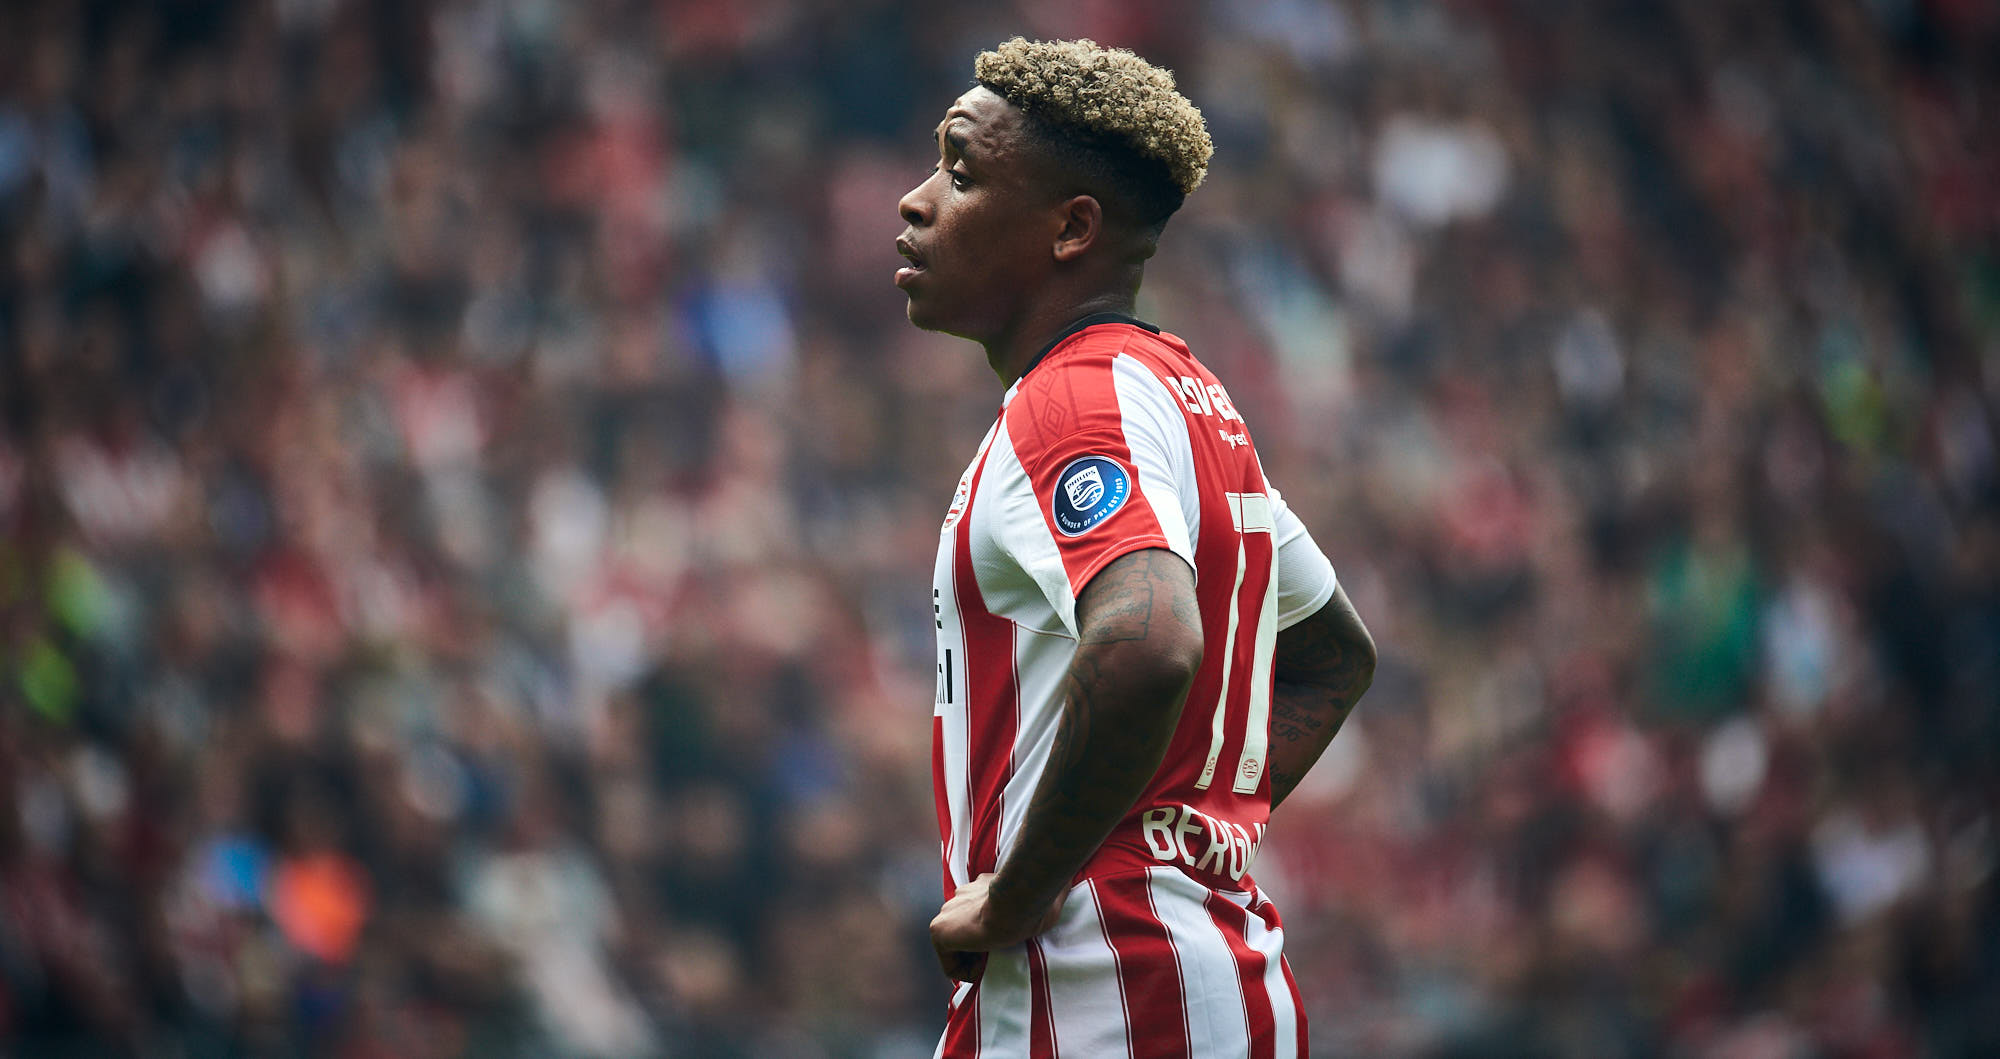 Focus on the face of Steven Bergwijn before a free kick